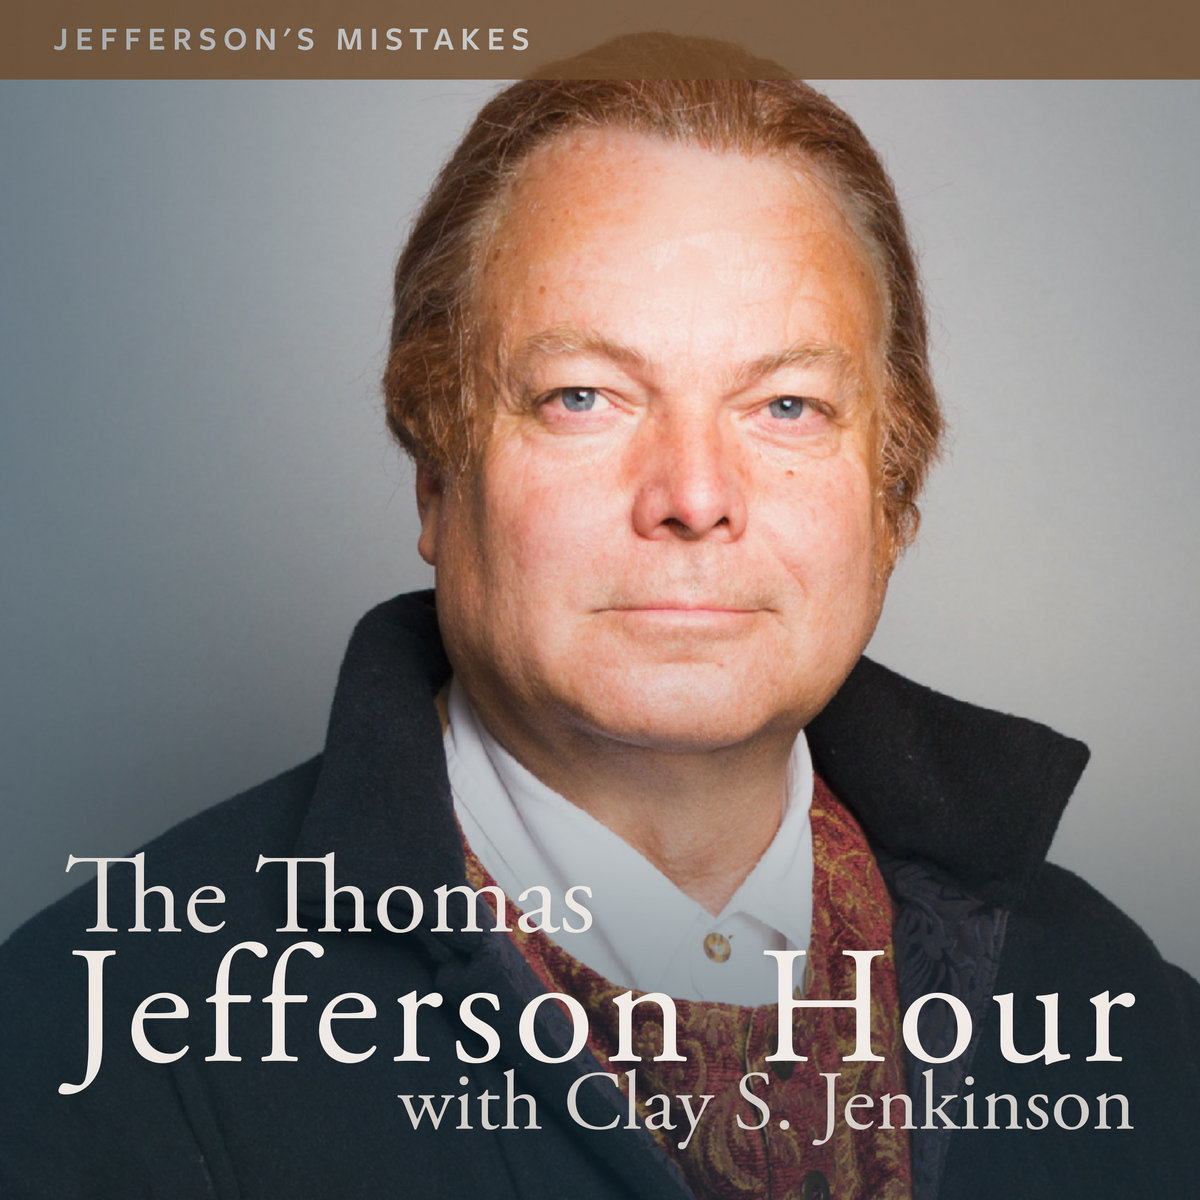 1299 Jefferson's Mistakes | The Thomas Jefferson Hour